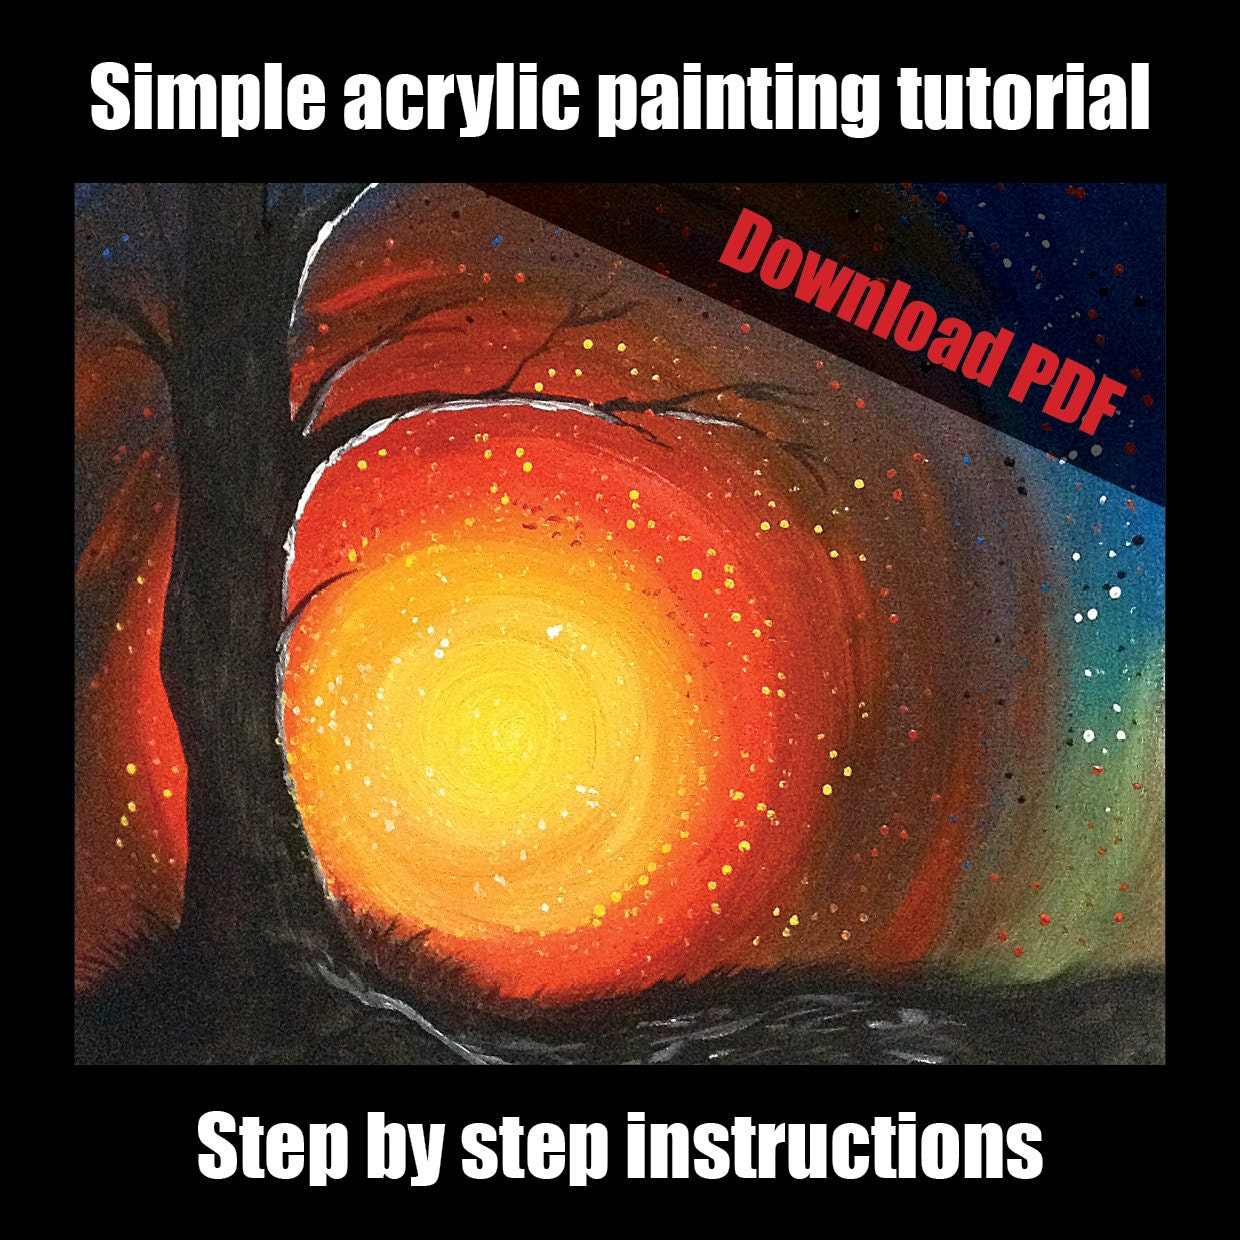 Simple acrylic painting tutorial for beginners step by step for Acrylic painting for beginners step by step